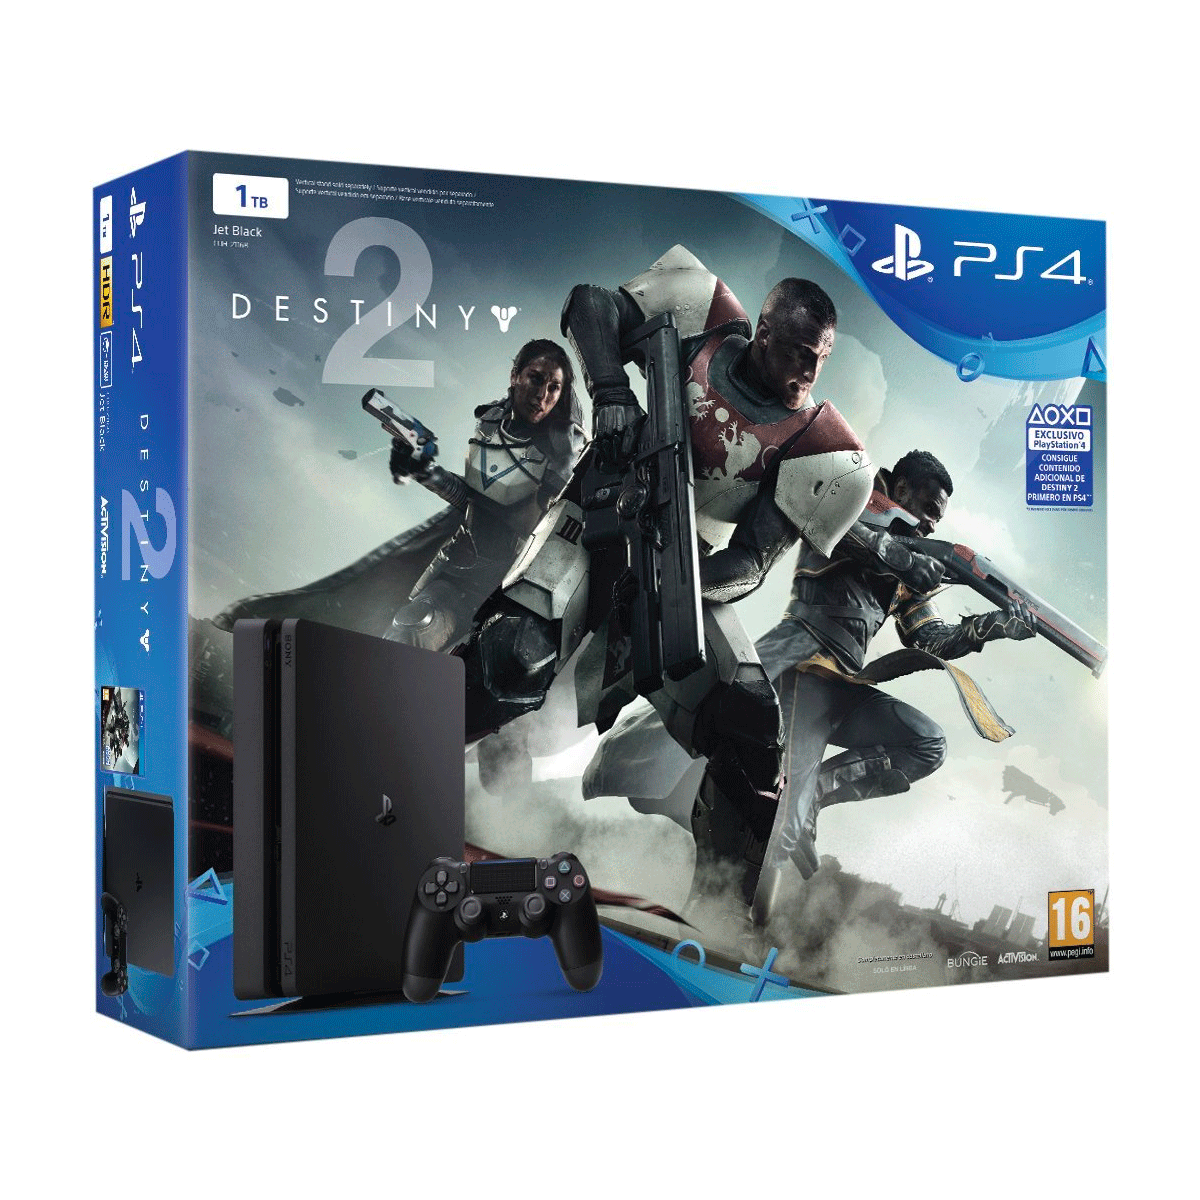 Videoconsola Sony Play Station 4 Slim 1 TB + Juego